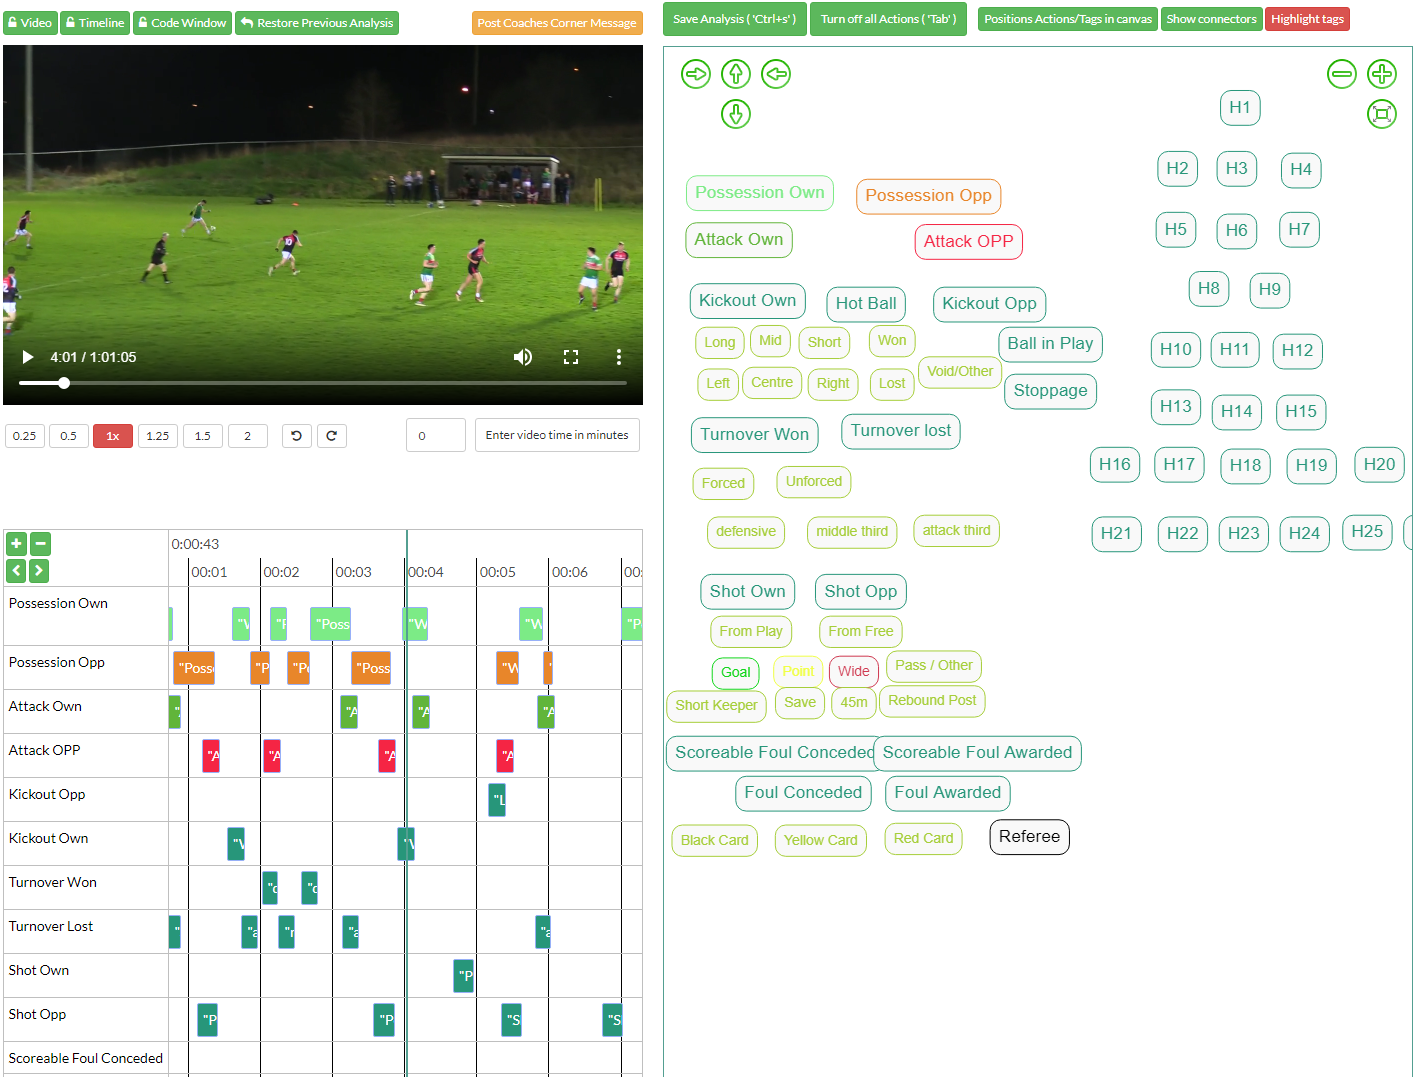 Gaelic Football Video Analysis